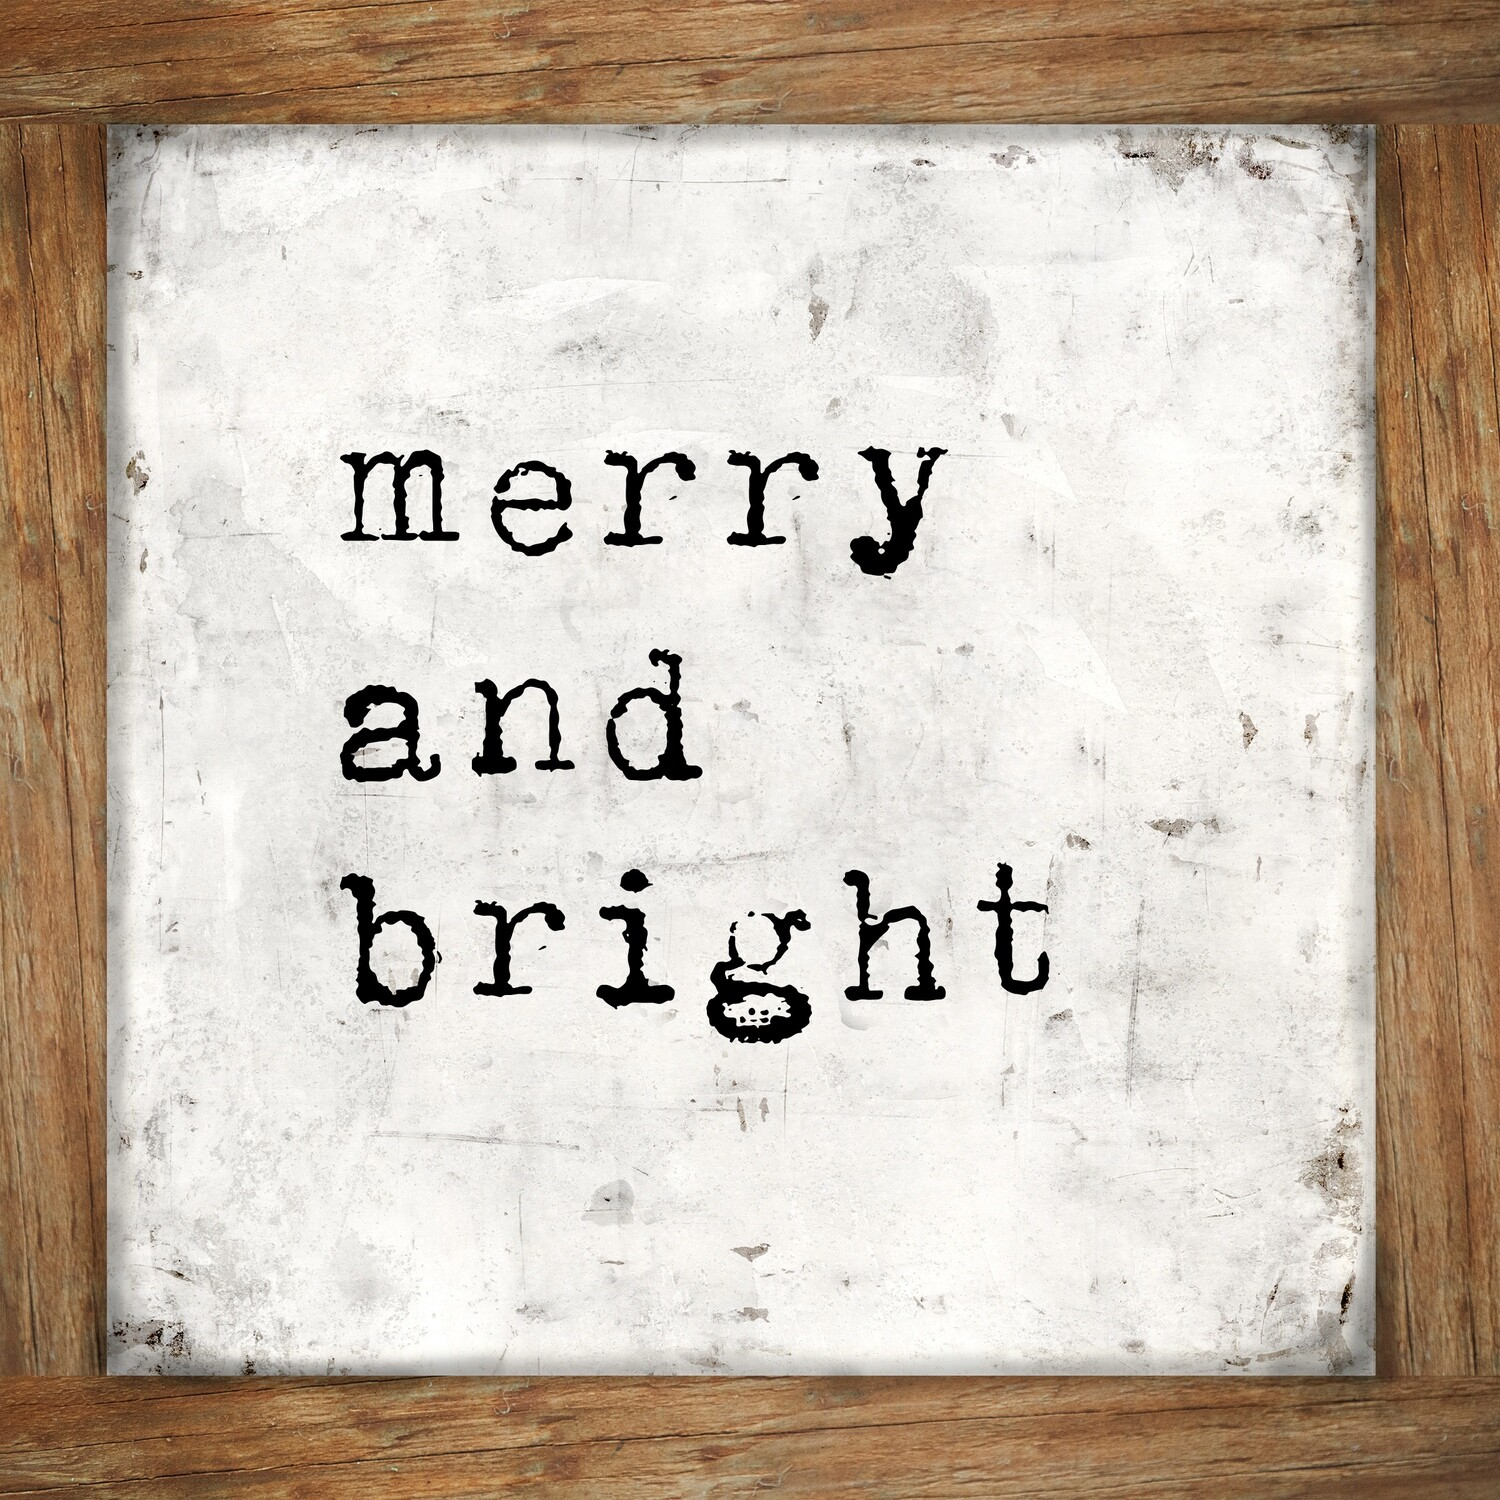 """Merry and Bright"" wood frame Print on Wood 6x6 Overstock"